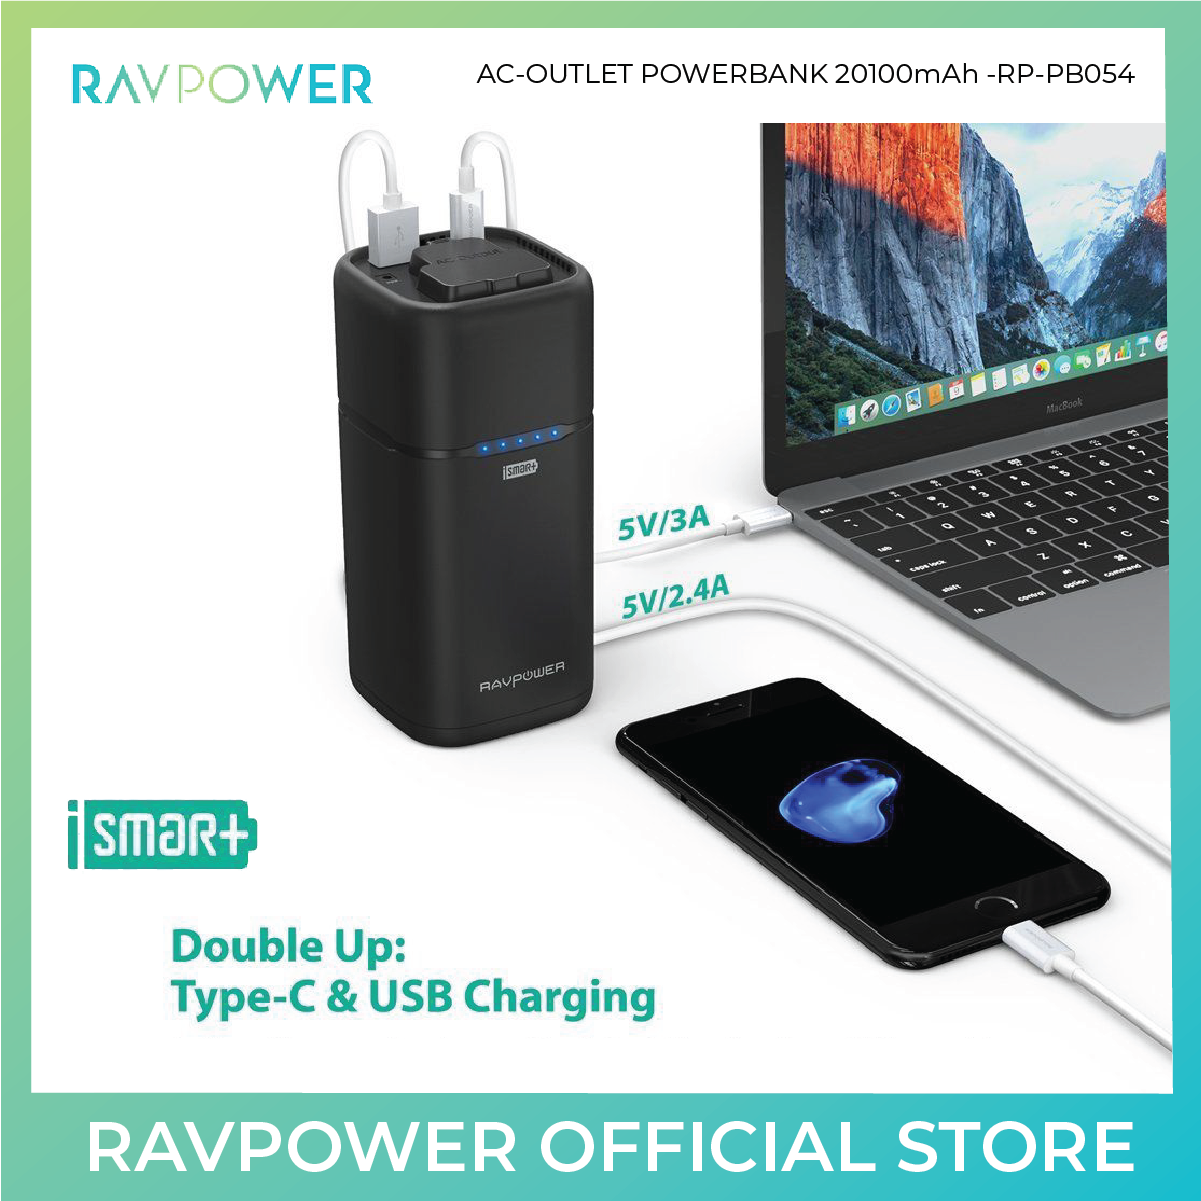 RAVPower AC Outlet Power Bank (RP-PB054) - 20100mAh